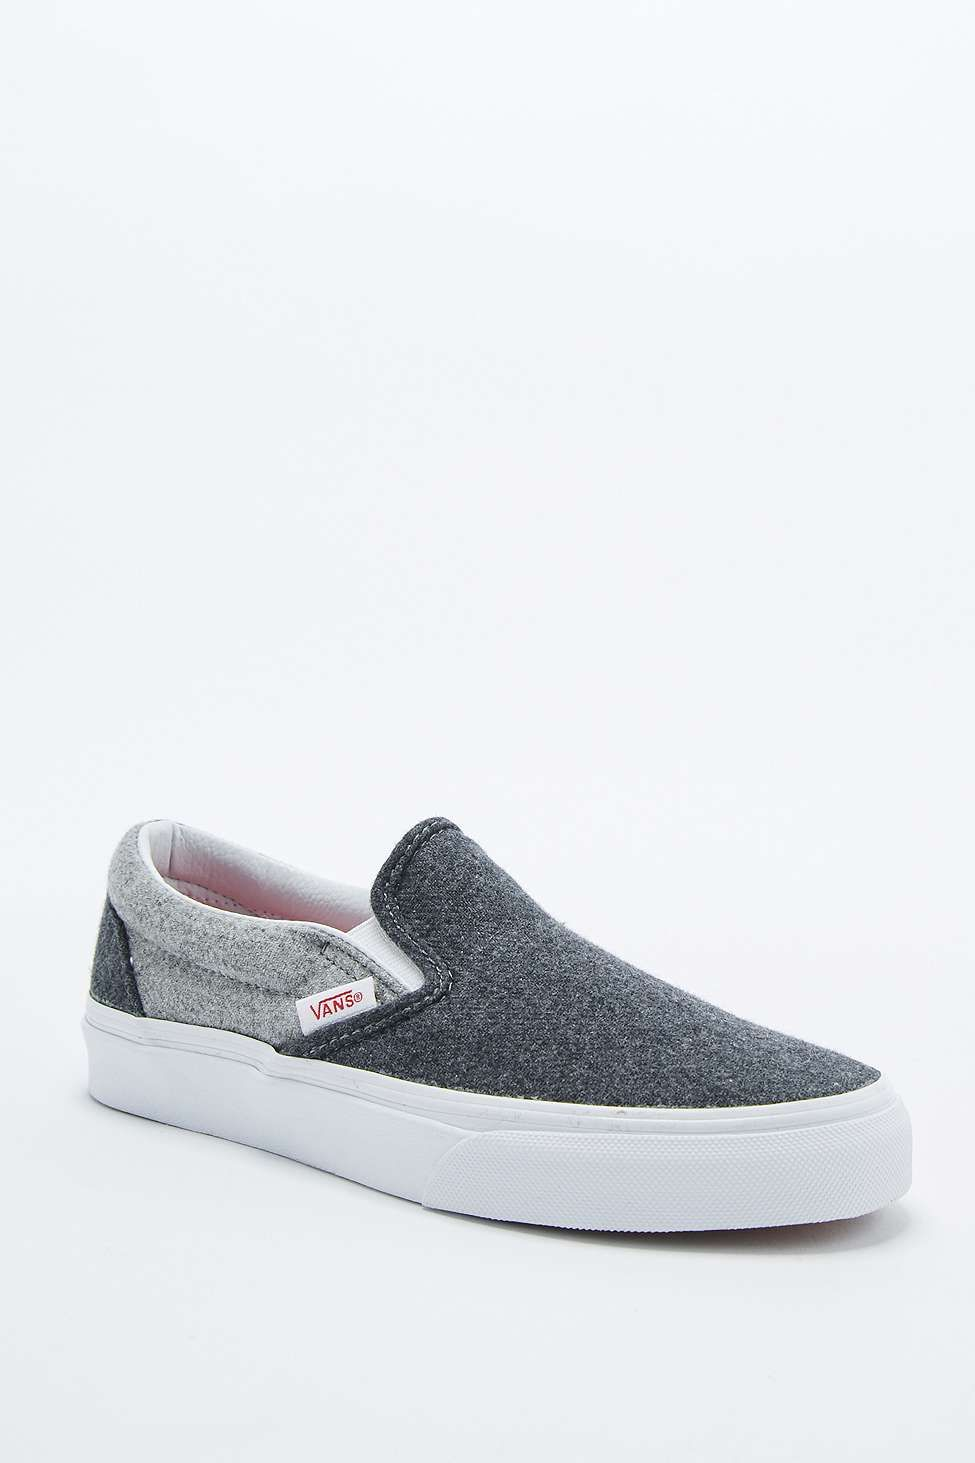 Vans Sneakers Mens - Vans Classic Slip On Grey Blue Black